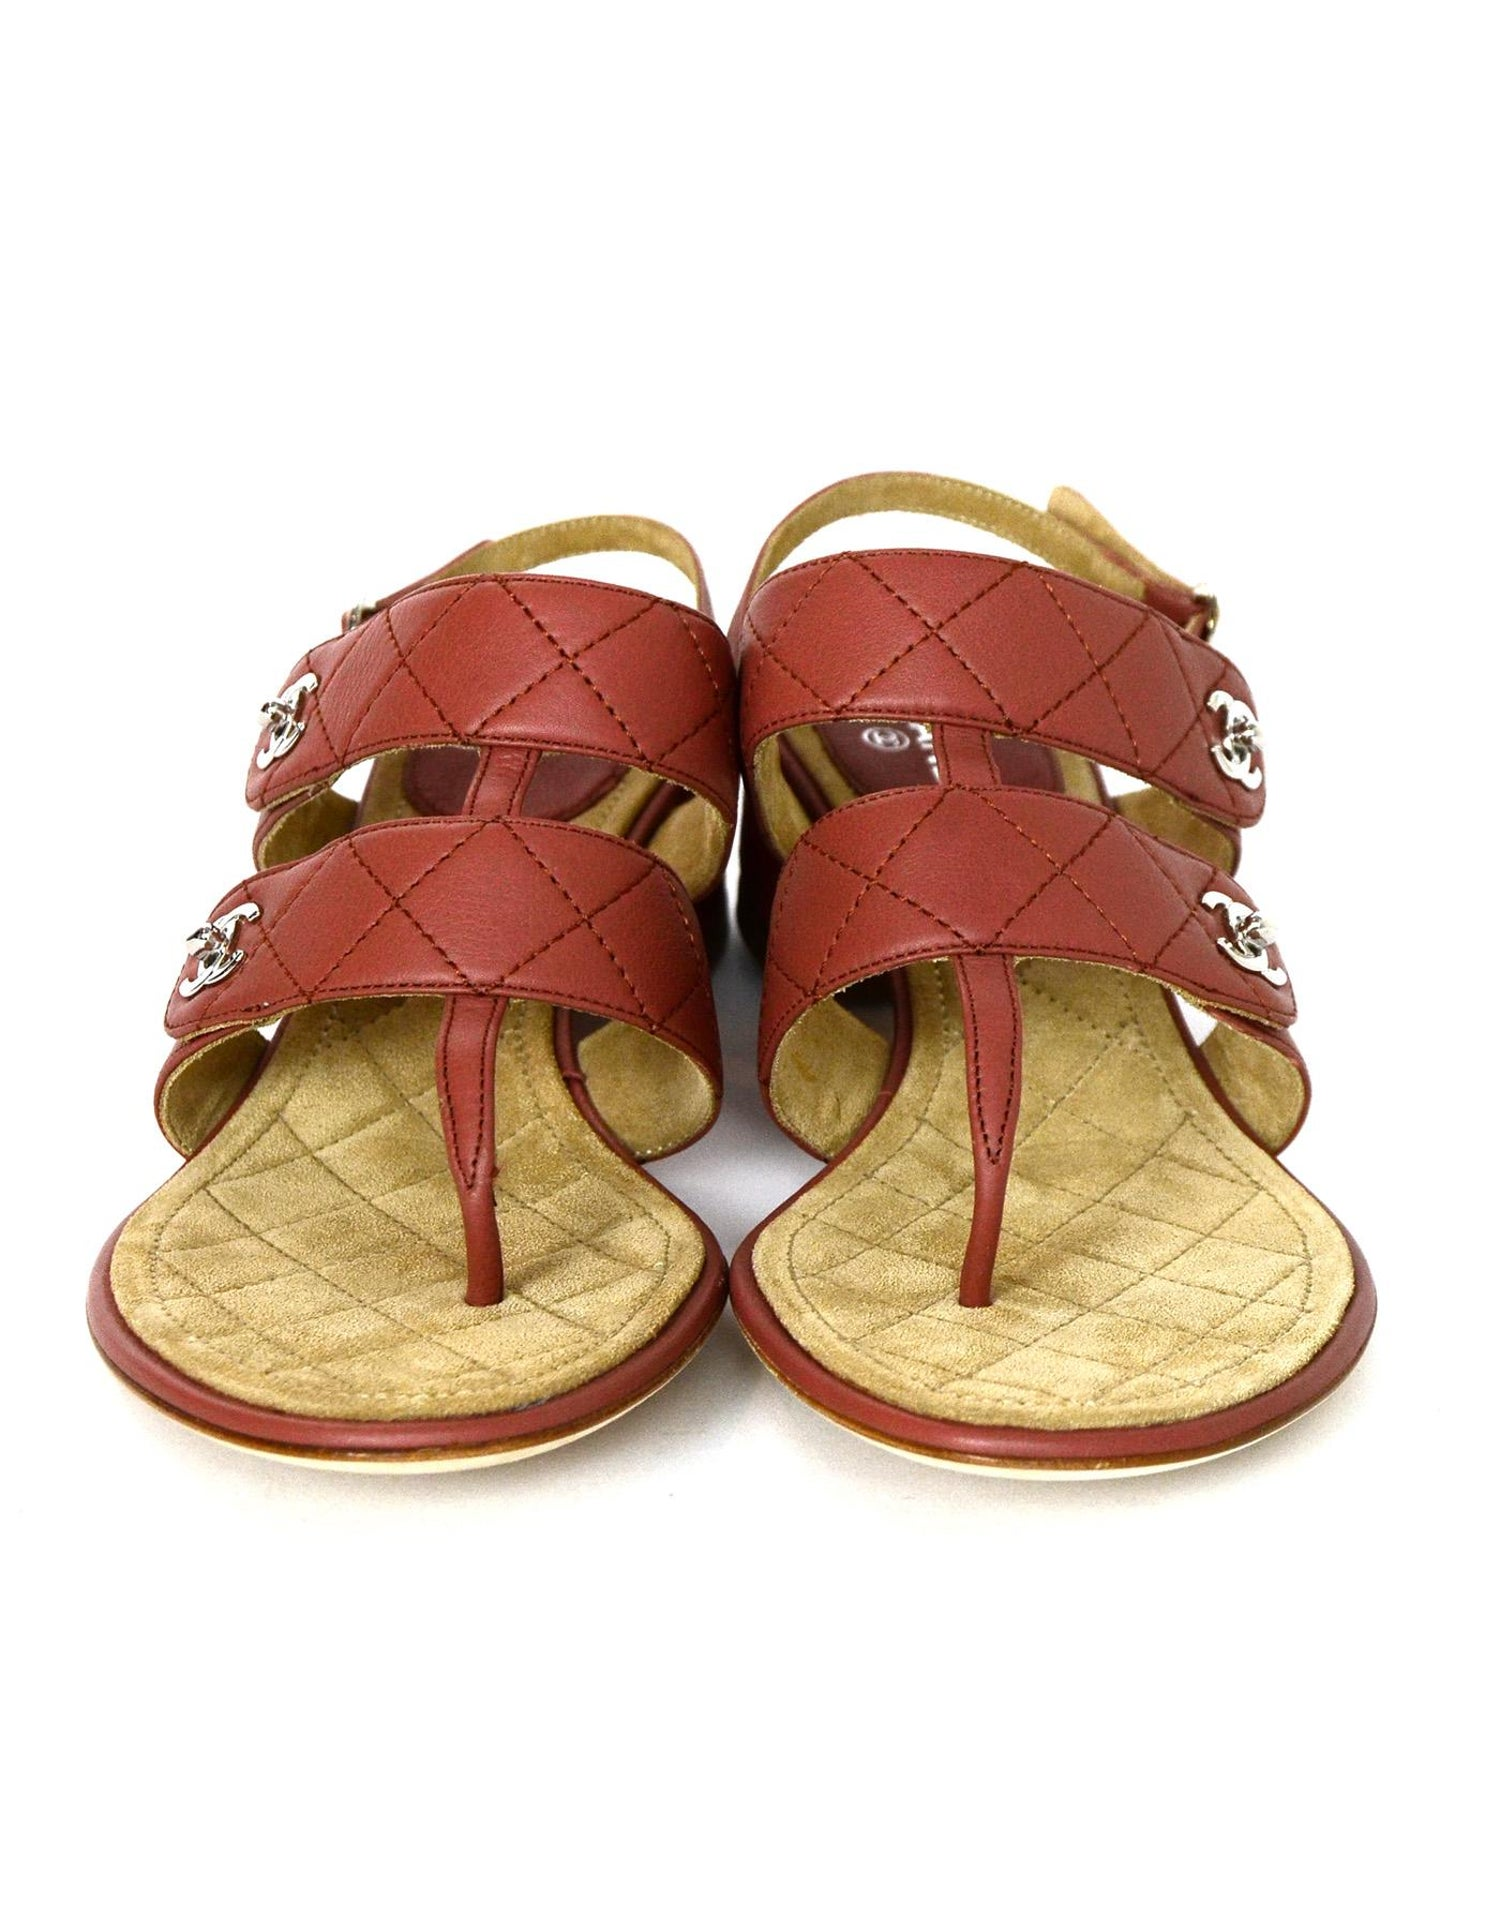 4029c3eadd2 Chanel Dark Blush Calfskin Leather Quilted CC Turnlock Heeled Sandals Sz 38  For Sale at 1stdibs